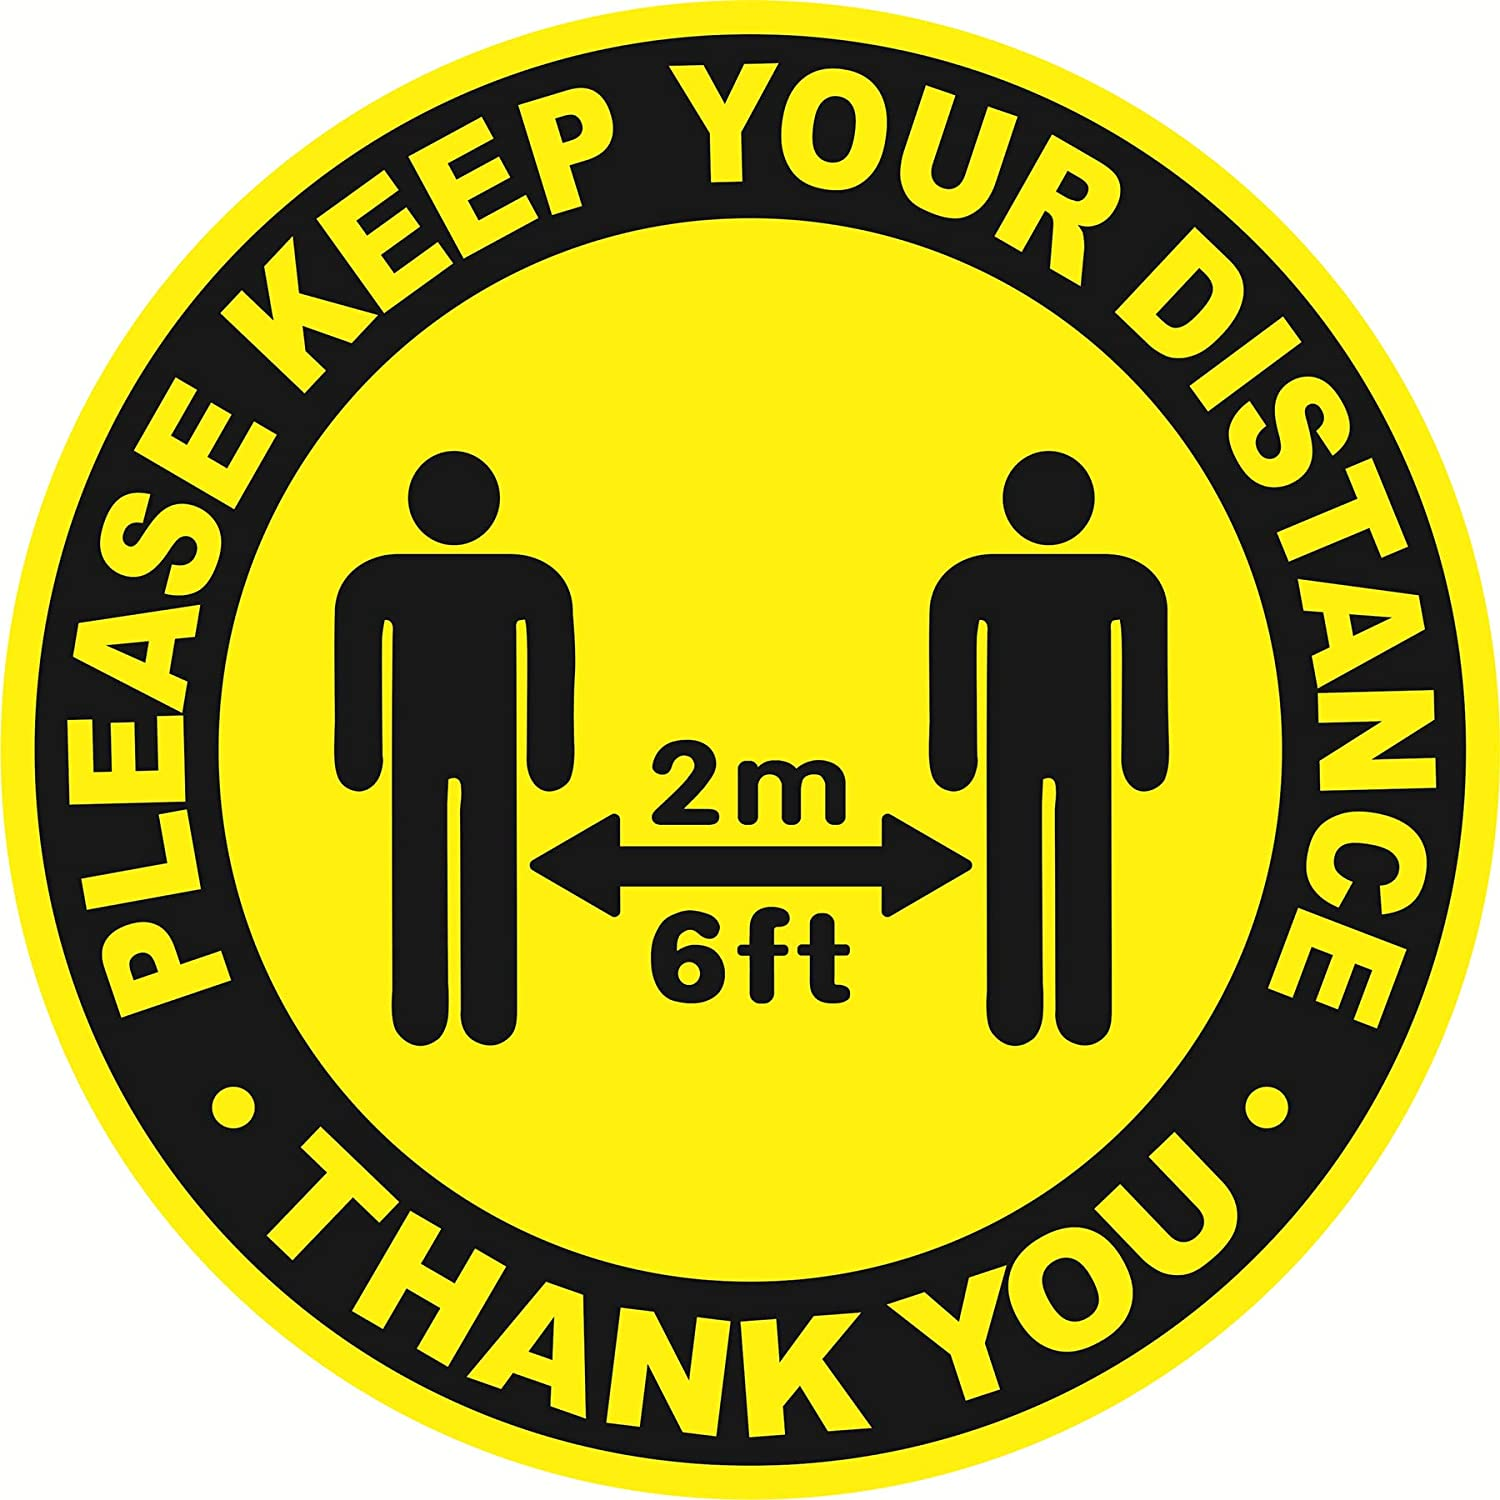 Social Distancing Floor Decal Stickers 6 Ft Stand Apart Notice Caution B